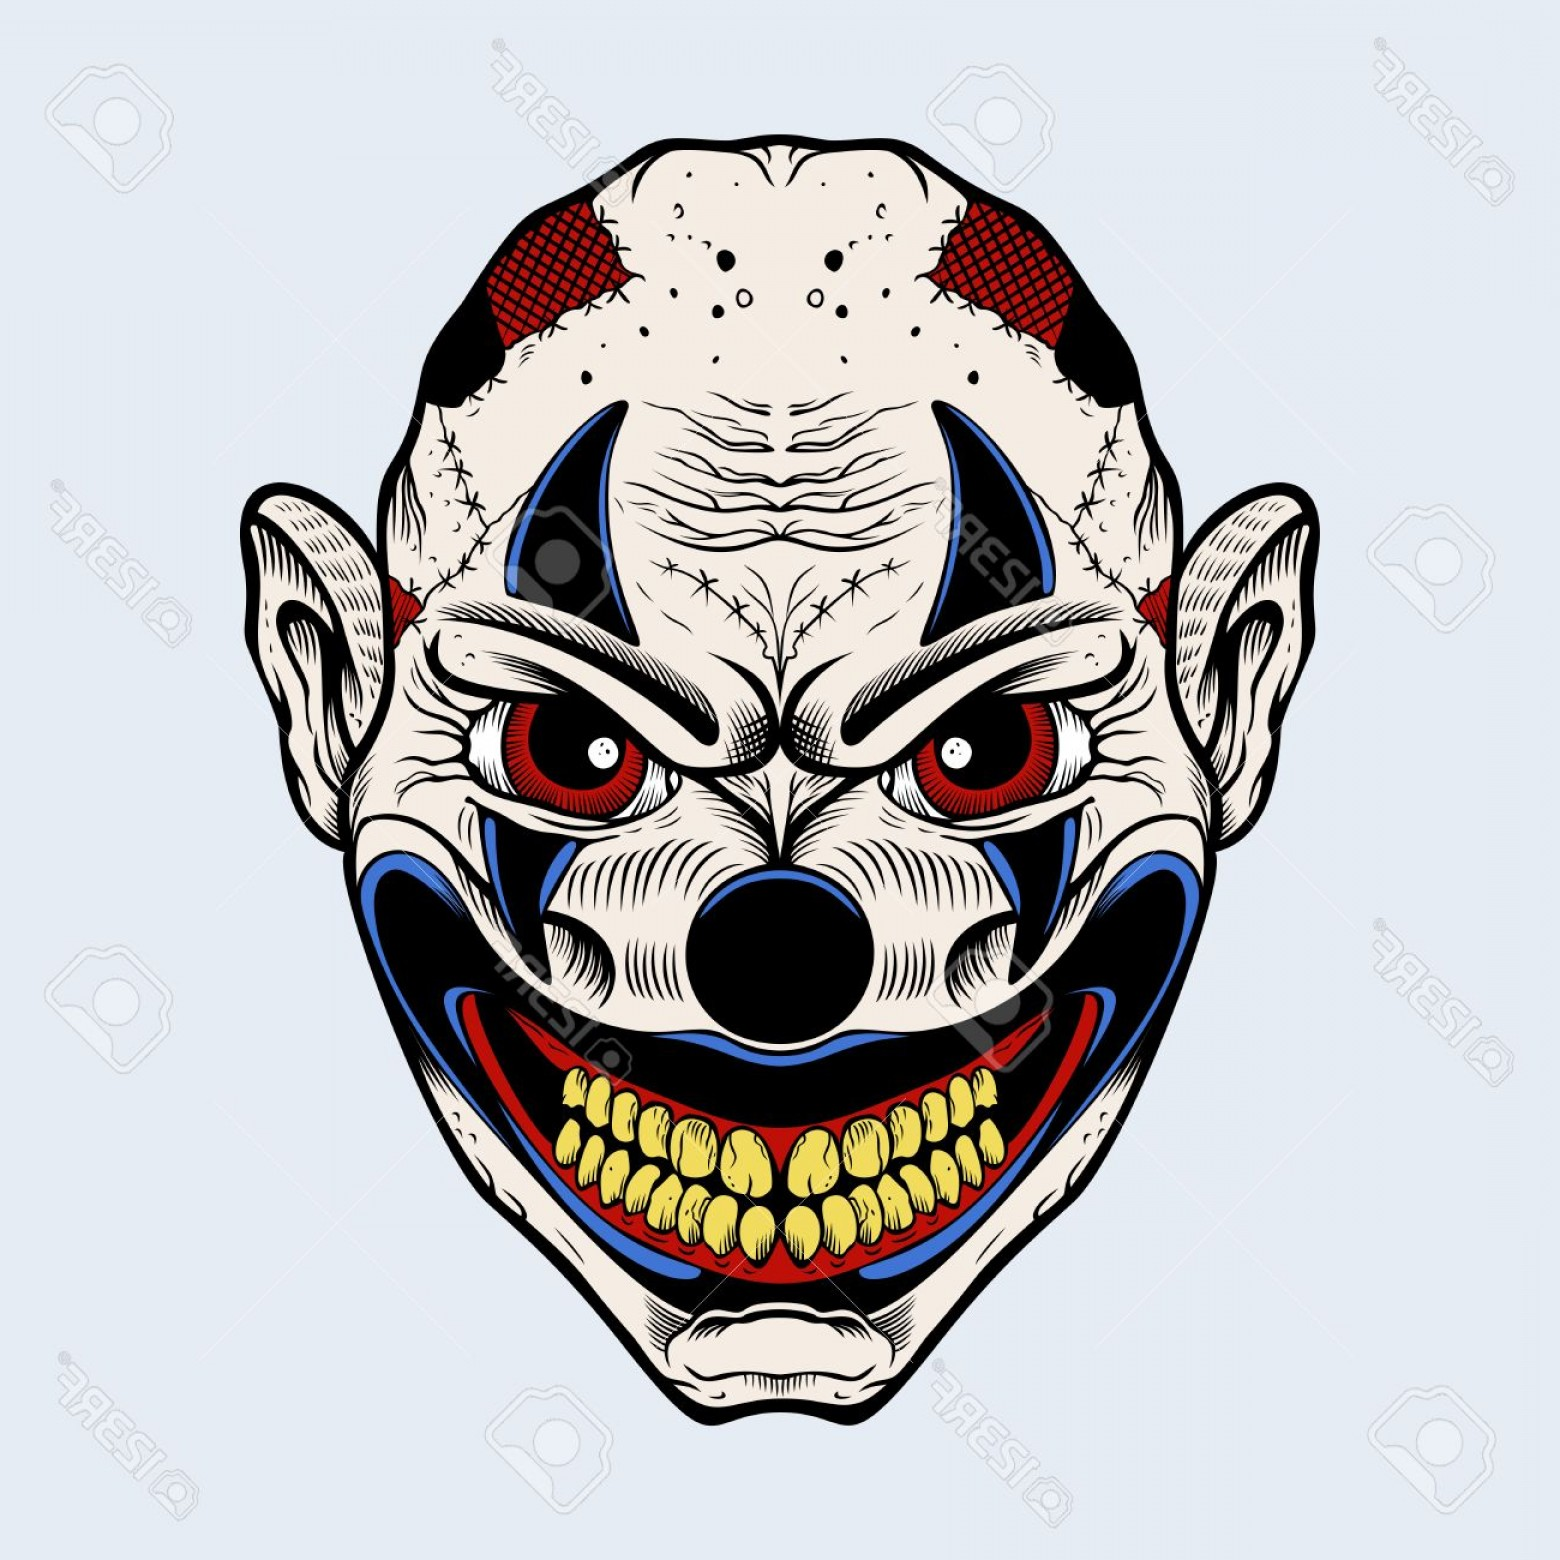 Creepy Clown Vector: Photostock Vector Illustration Of Scary Clown With Red Eyes